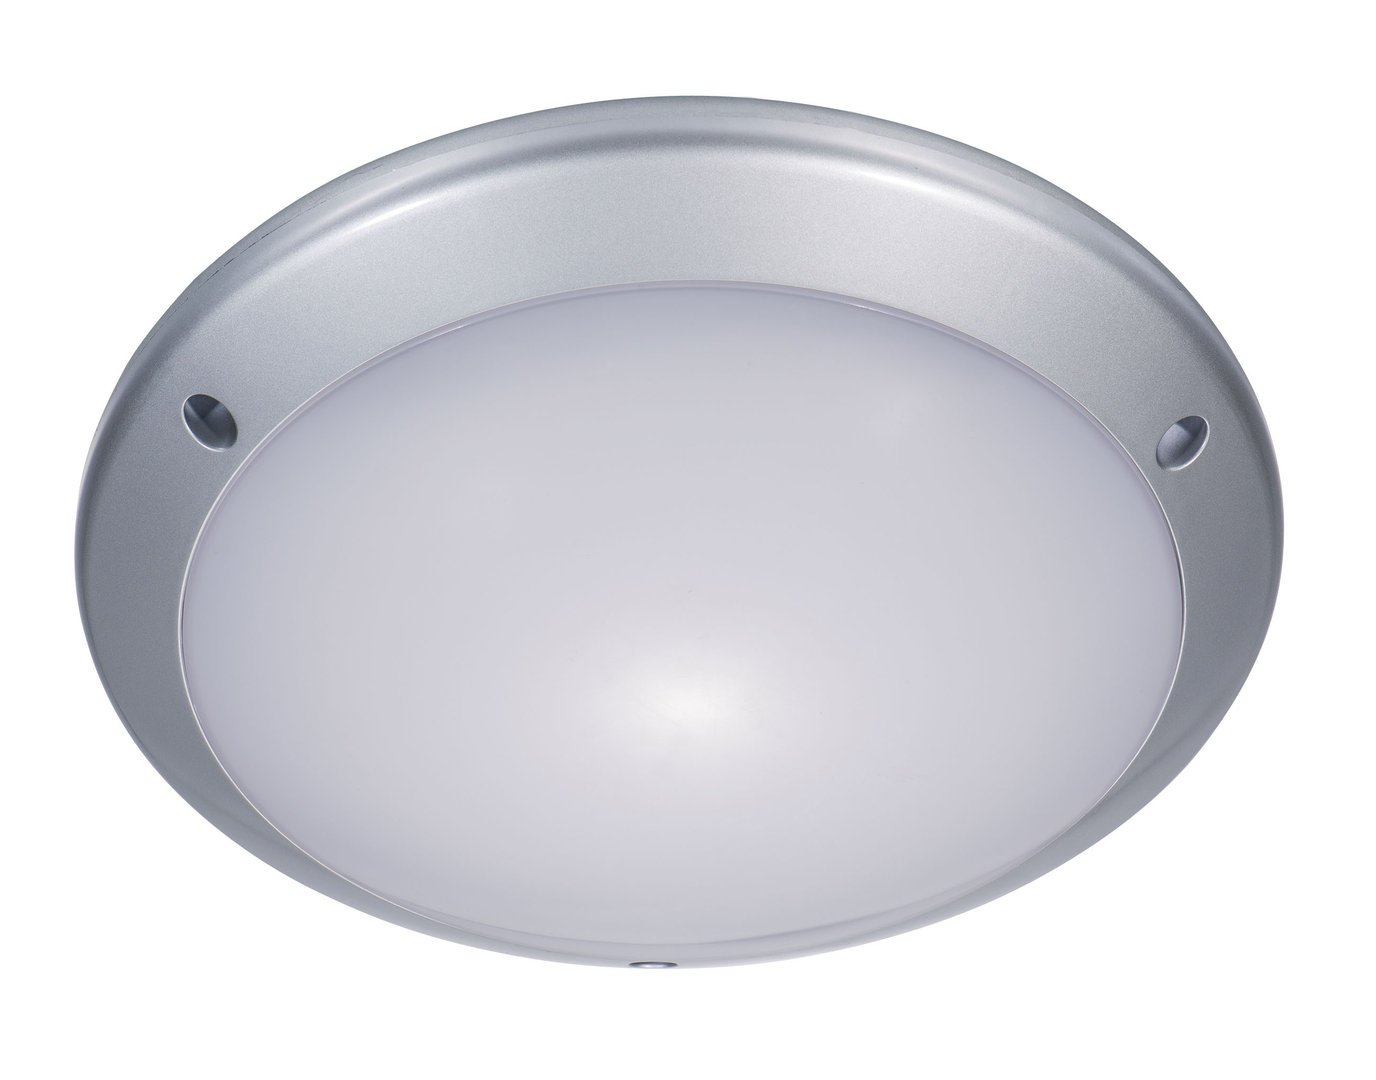 Zeyun led ceiling light fitting with motion sensor modern flush mounted bulkhead light for indoor and outdoor 25w neutral white ip54 silver